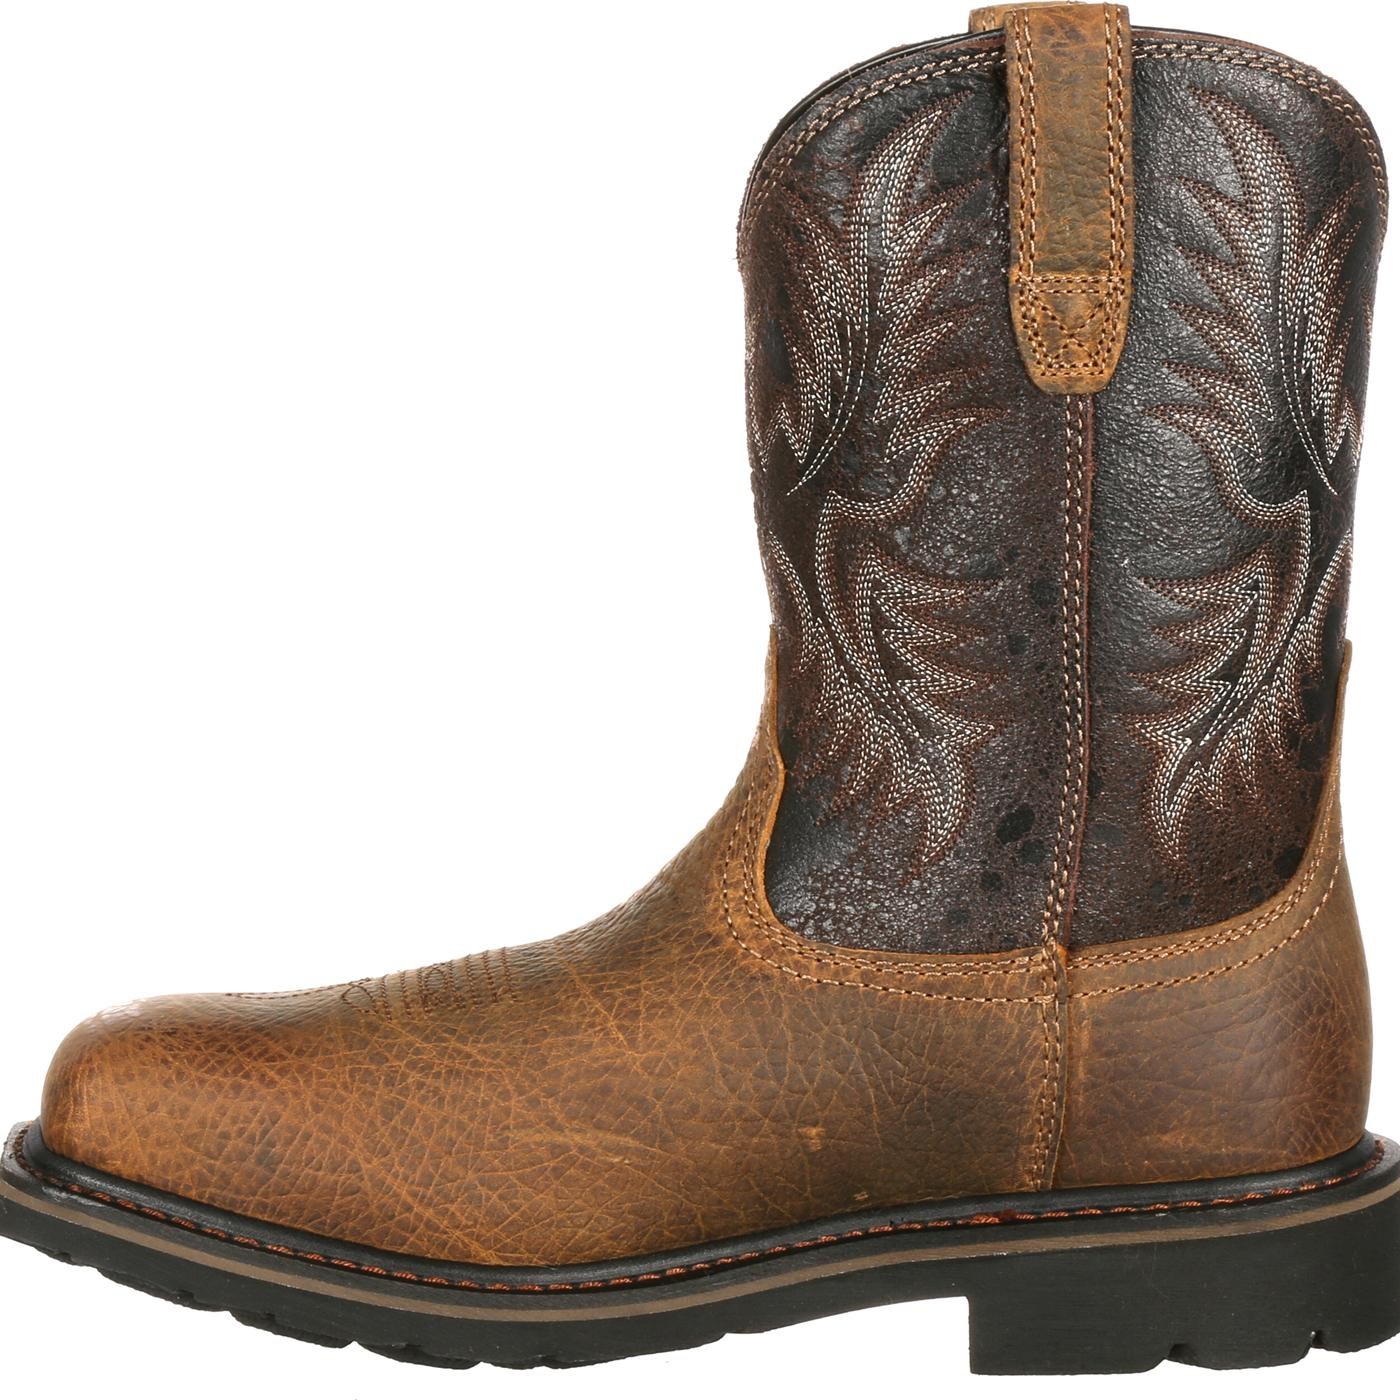 Ariat Sierra Wide Square Toe Steel Toe Puncture-Resistant Western ...